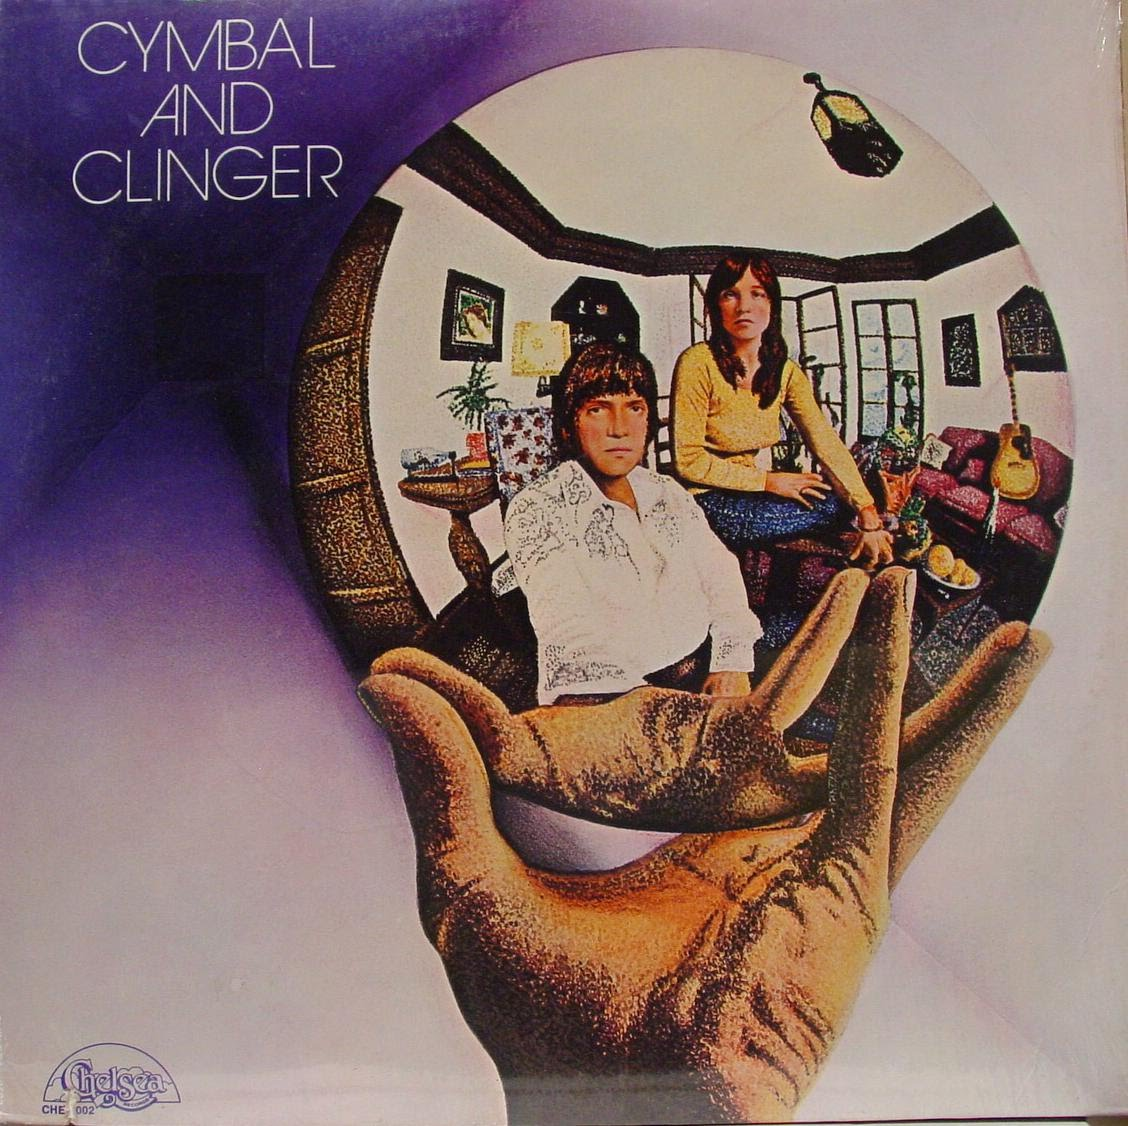 1972 Cymbal & Clinger – Cymbal & Clinger